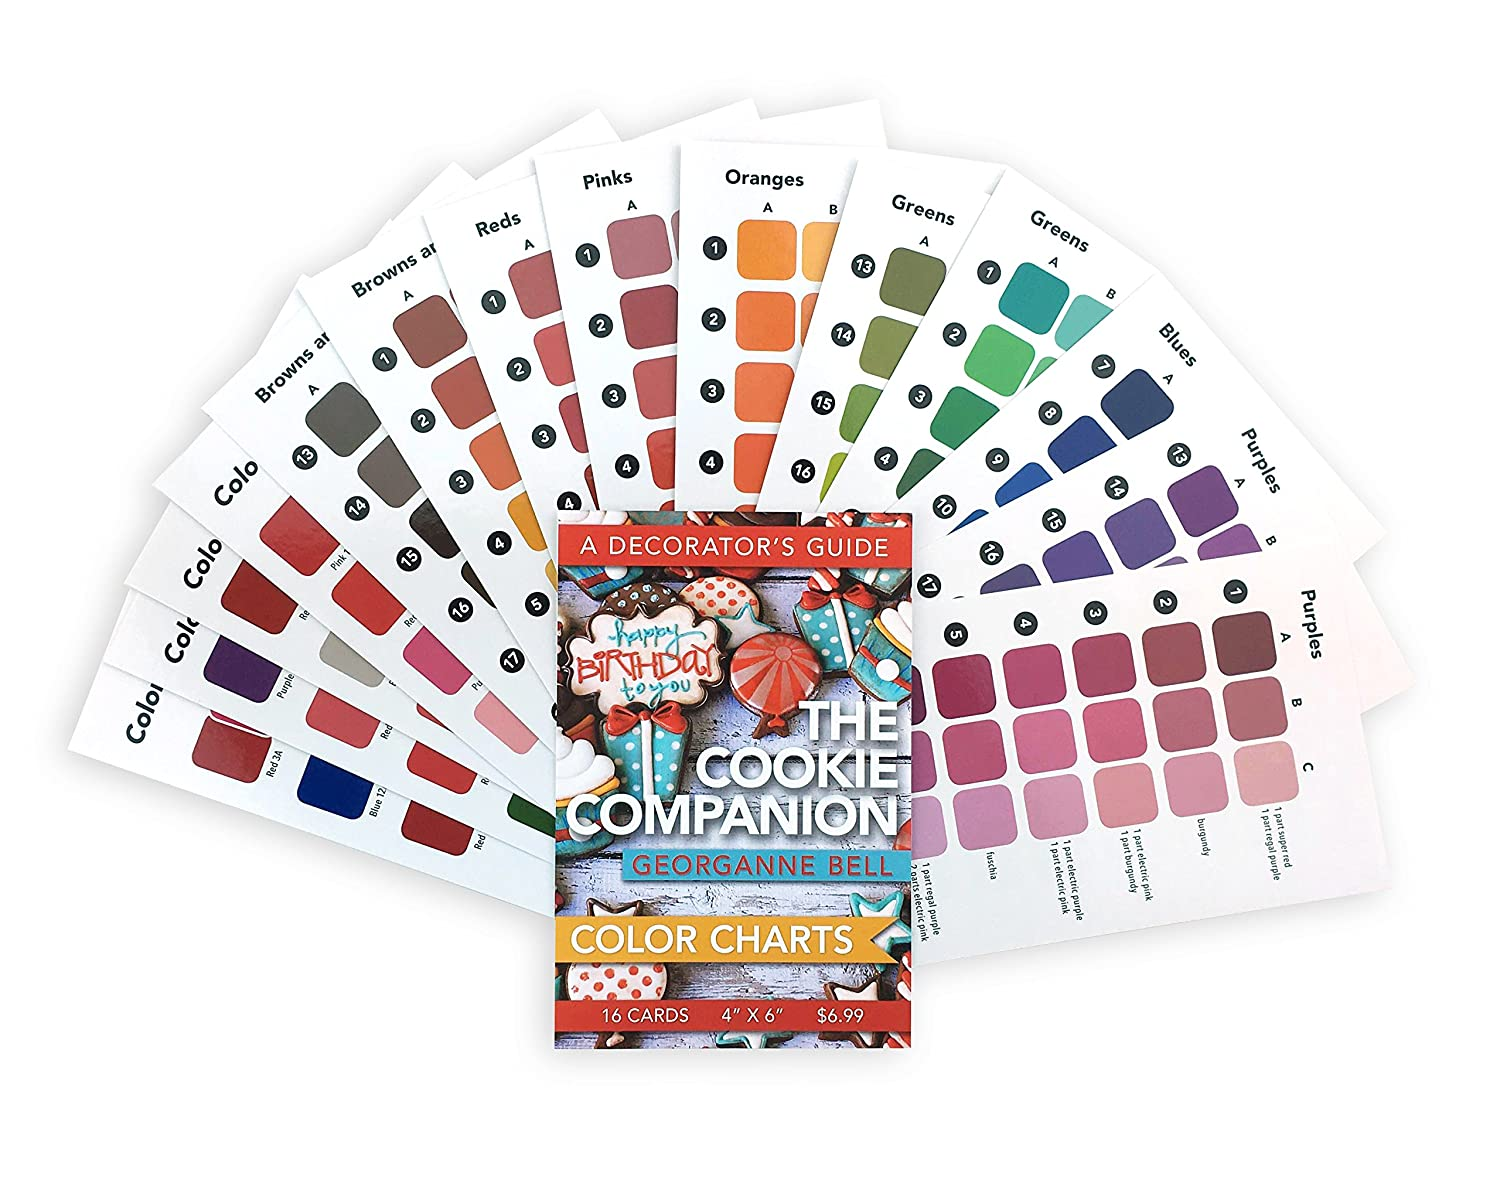 Amazon 16 cookie decorating color charts 4x6 for use amazon 16 cookie decorating color charts 4x6 for use with the cookie companion a decorators guide by georganne bell kitchen dining nvjuhfo Choice Image